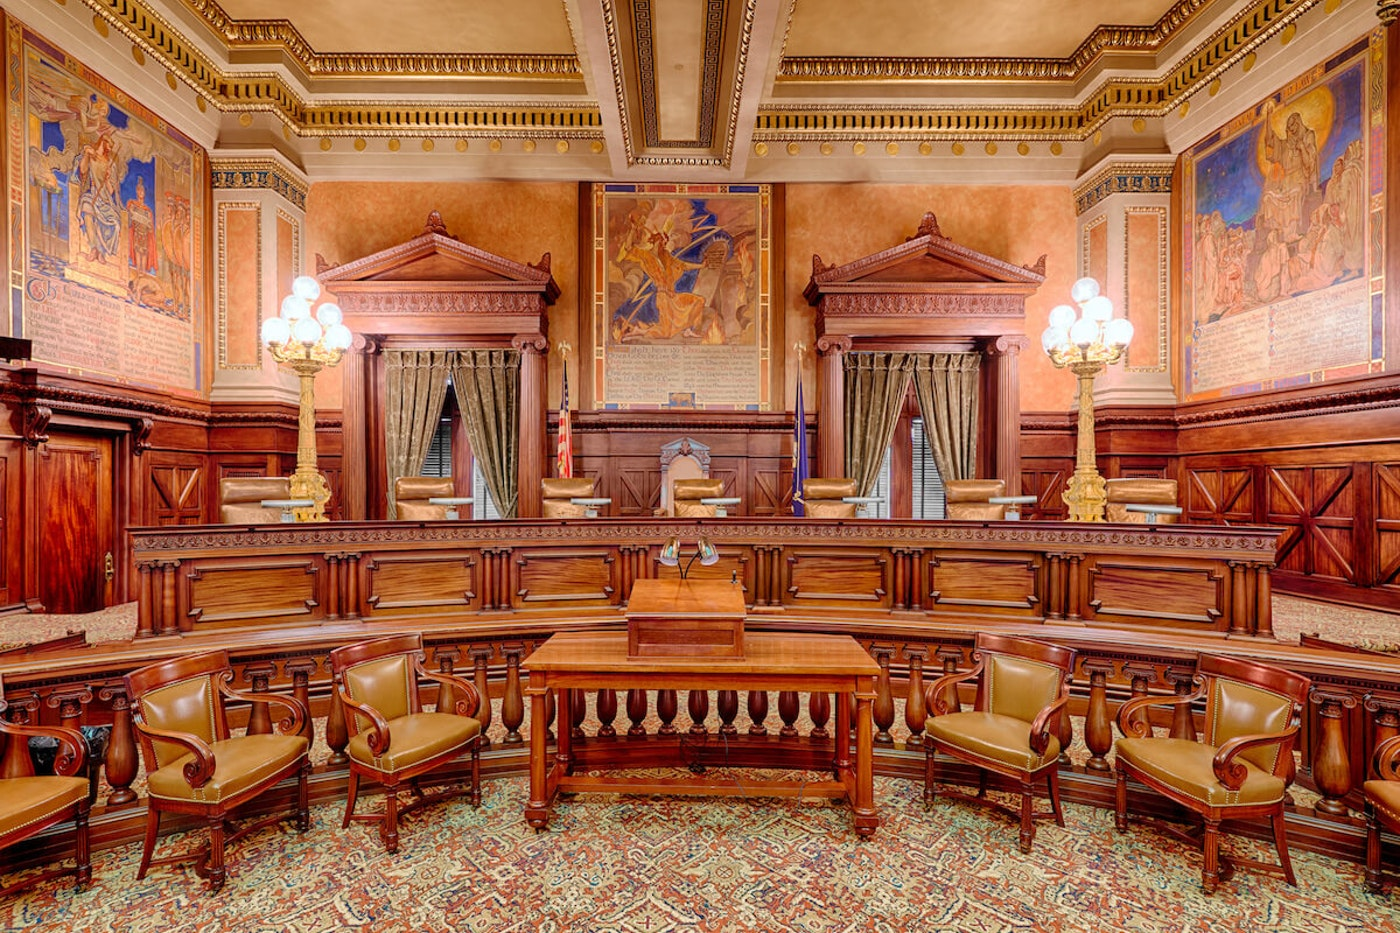 The Supreme Court Chamber in the Pennsylvania State Capitol building in Harrisburg, Pennsylvania. (Shutterstock Photo/Nagel Photography)